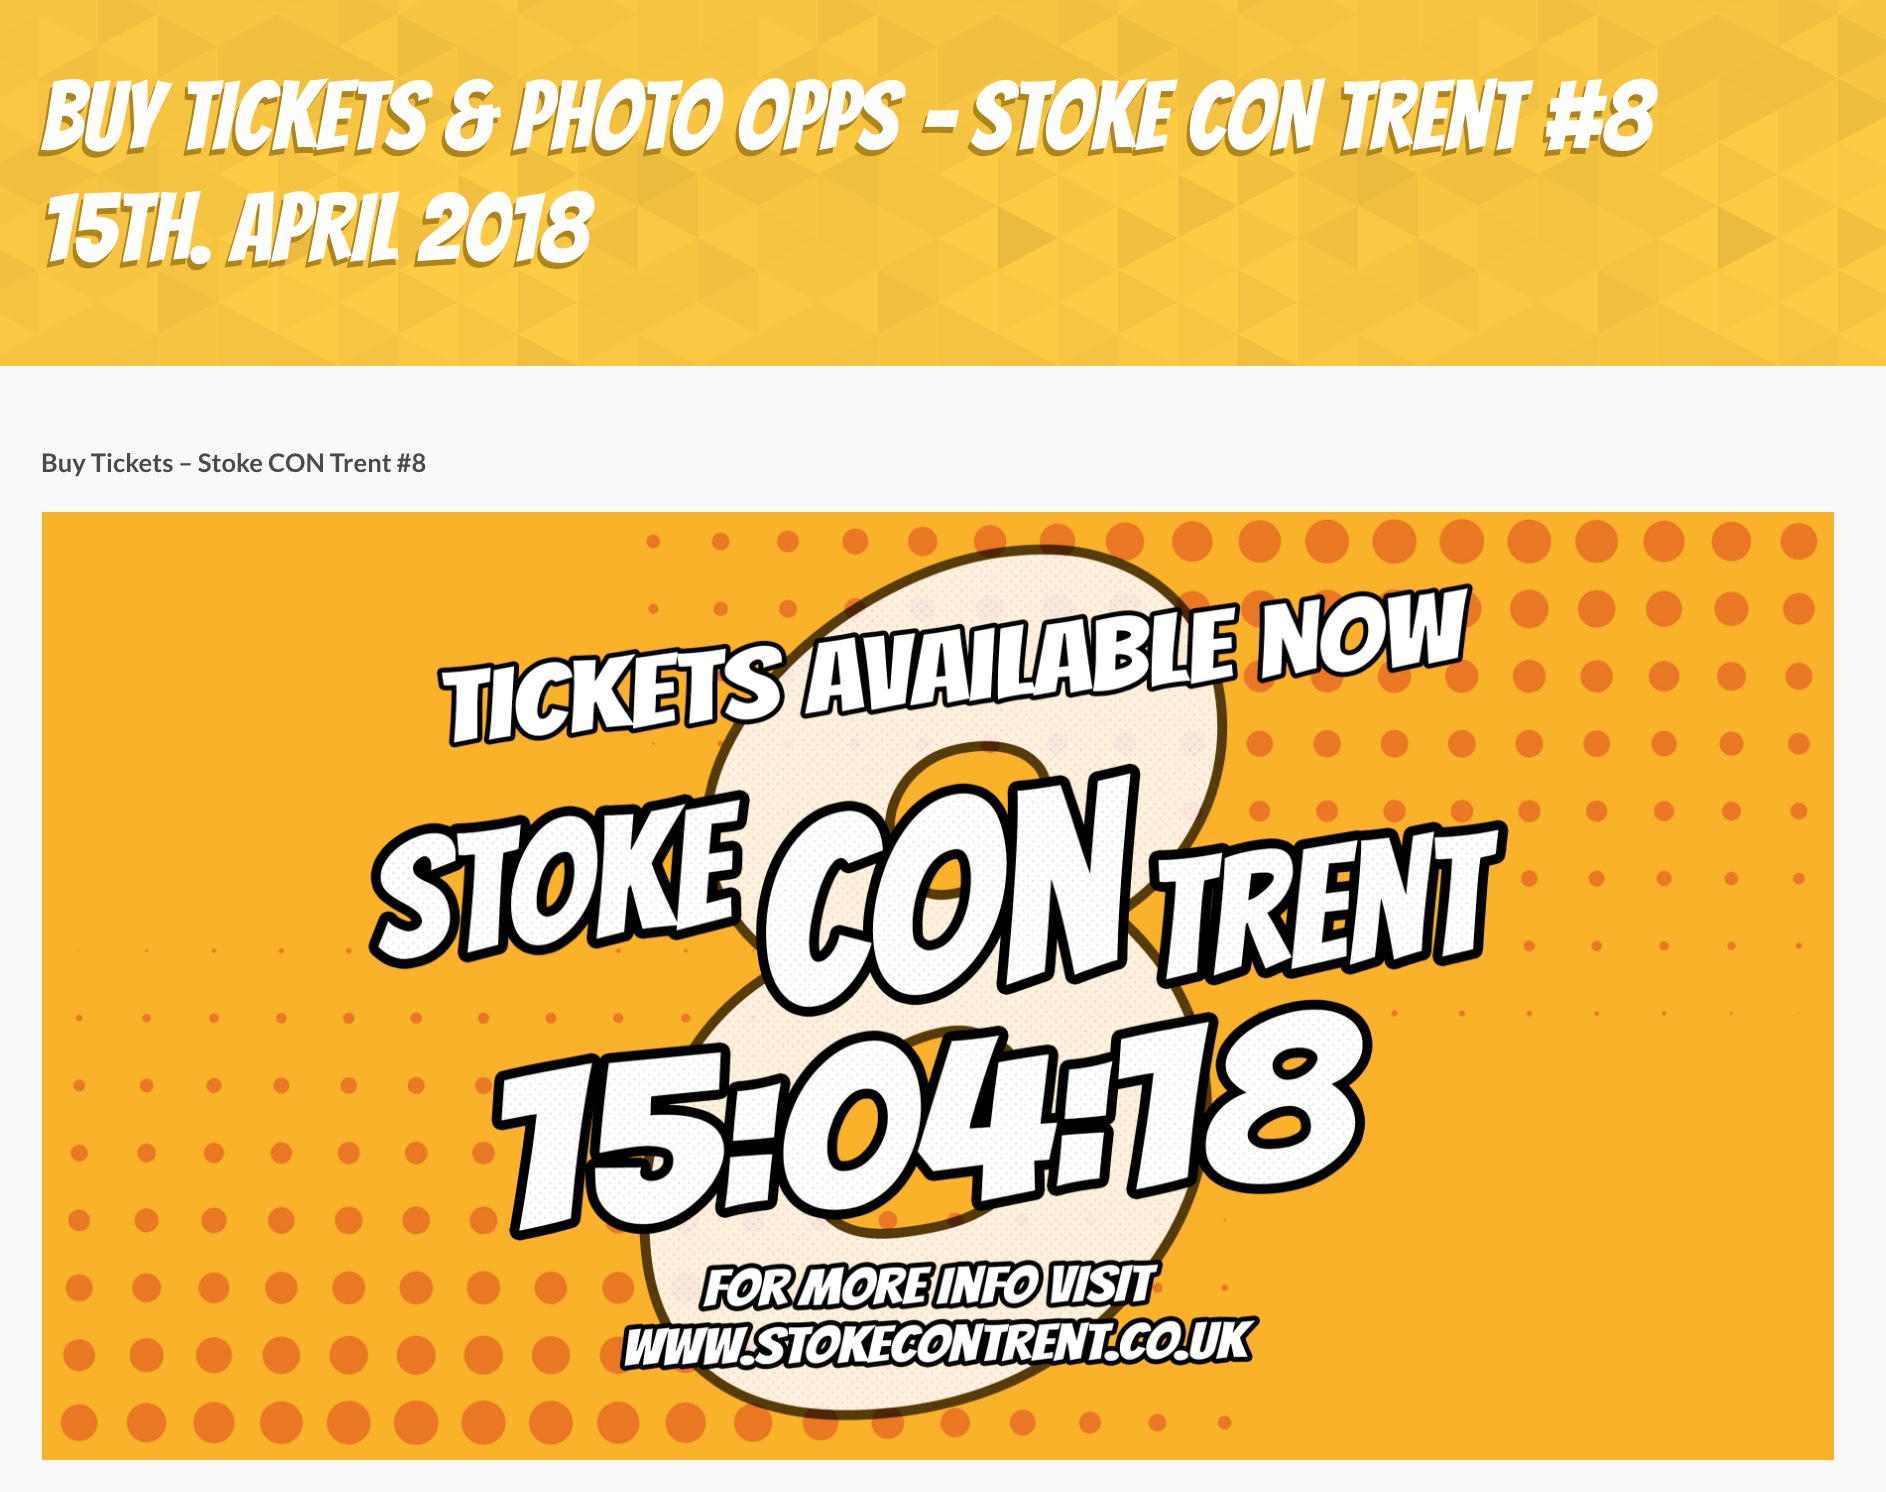 Buy Tickets HERE for Stoke CON Trent #8 15th April 2018